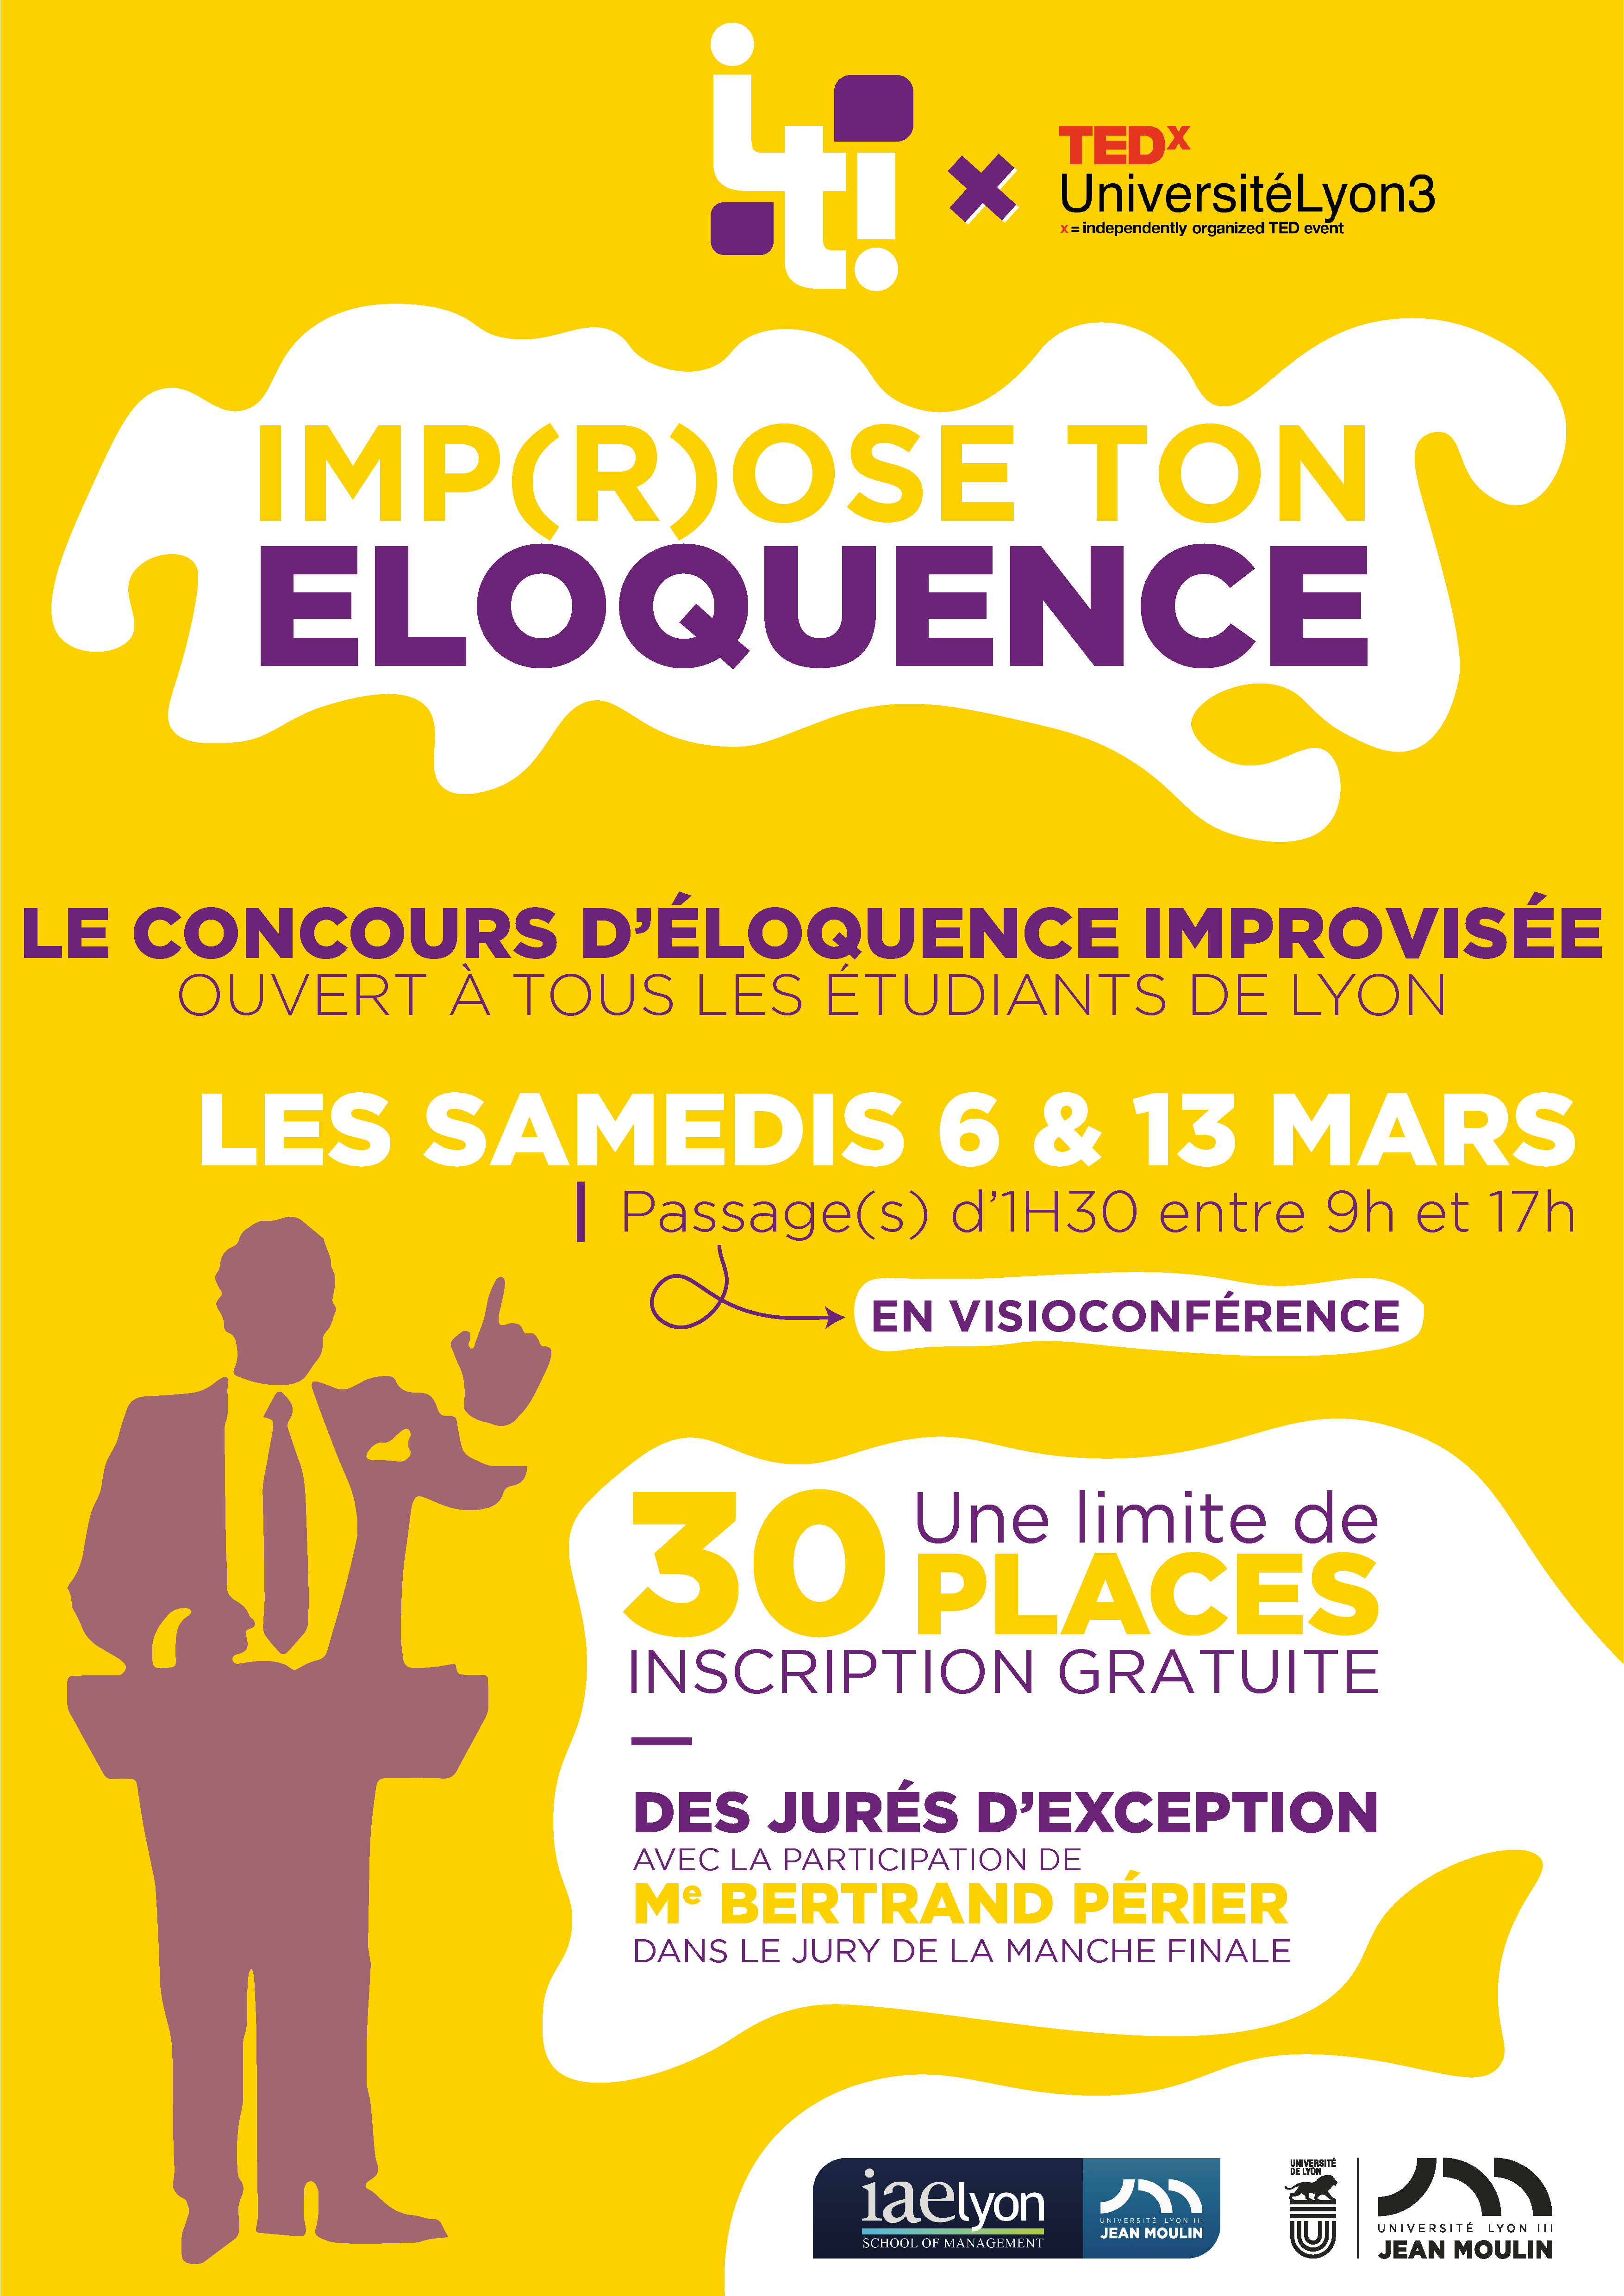 concours eloquence